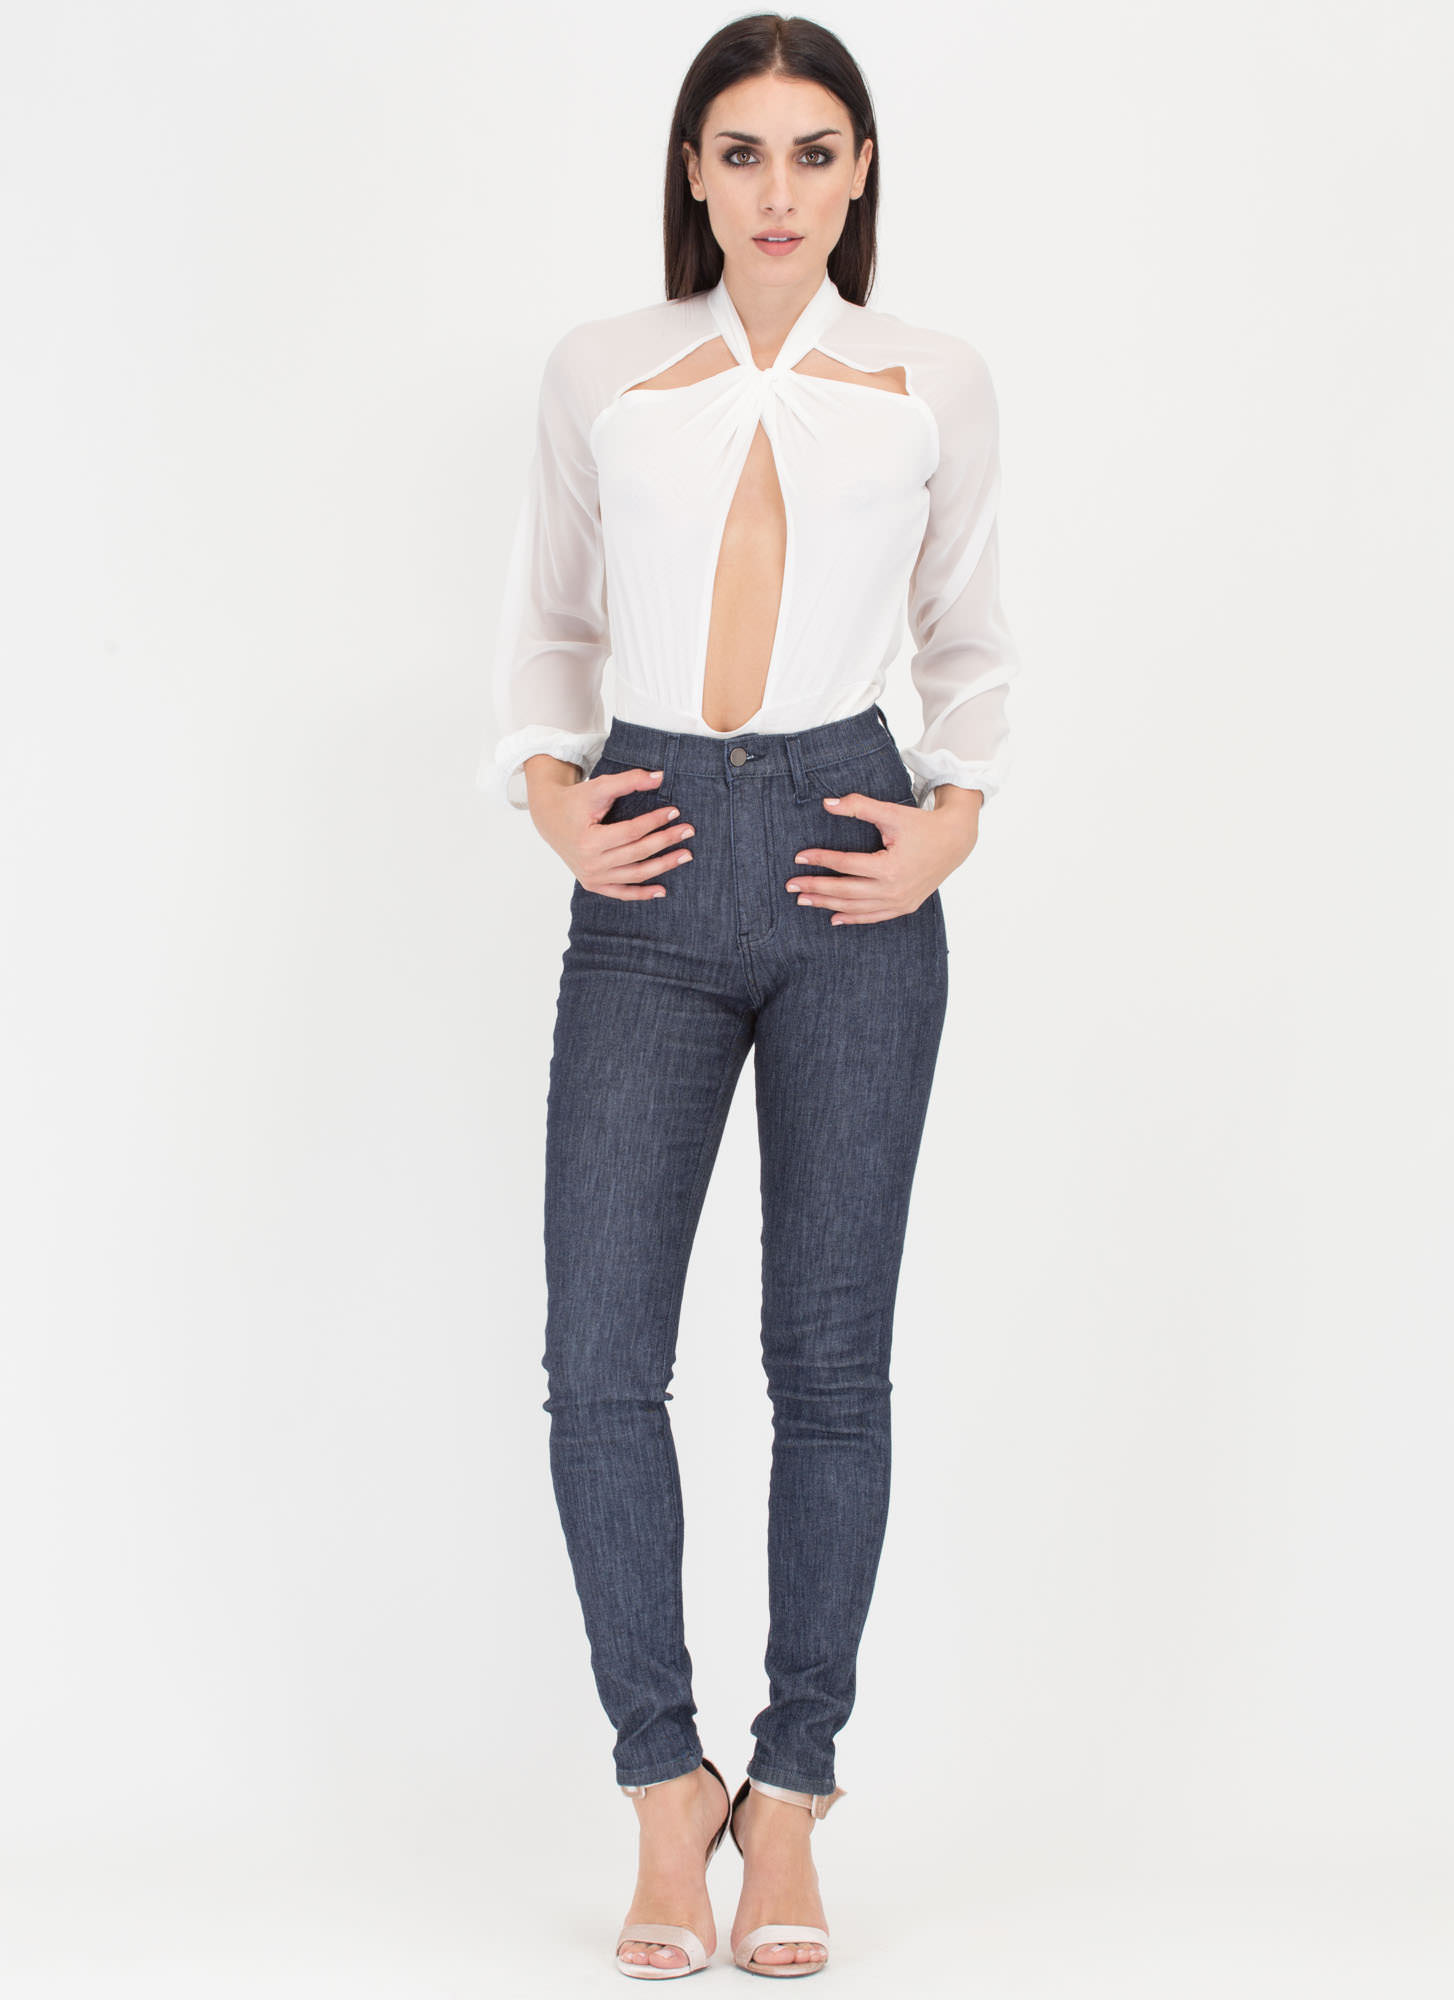 Simple As That High-Waisted Jeans DKBLUE